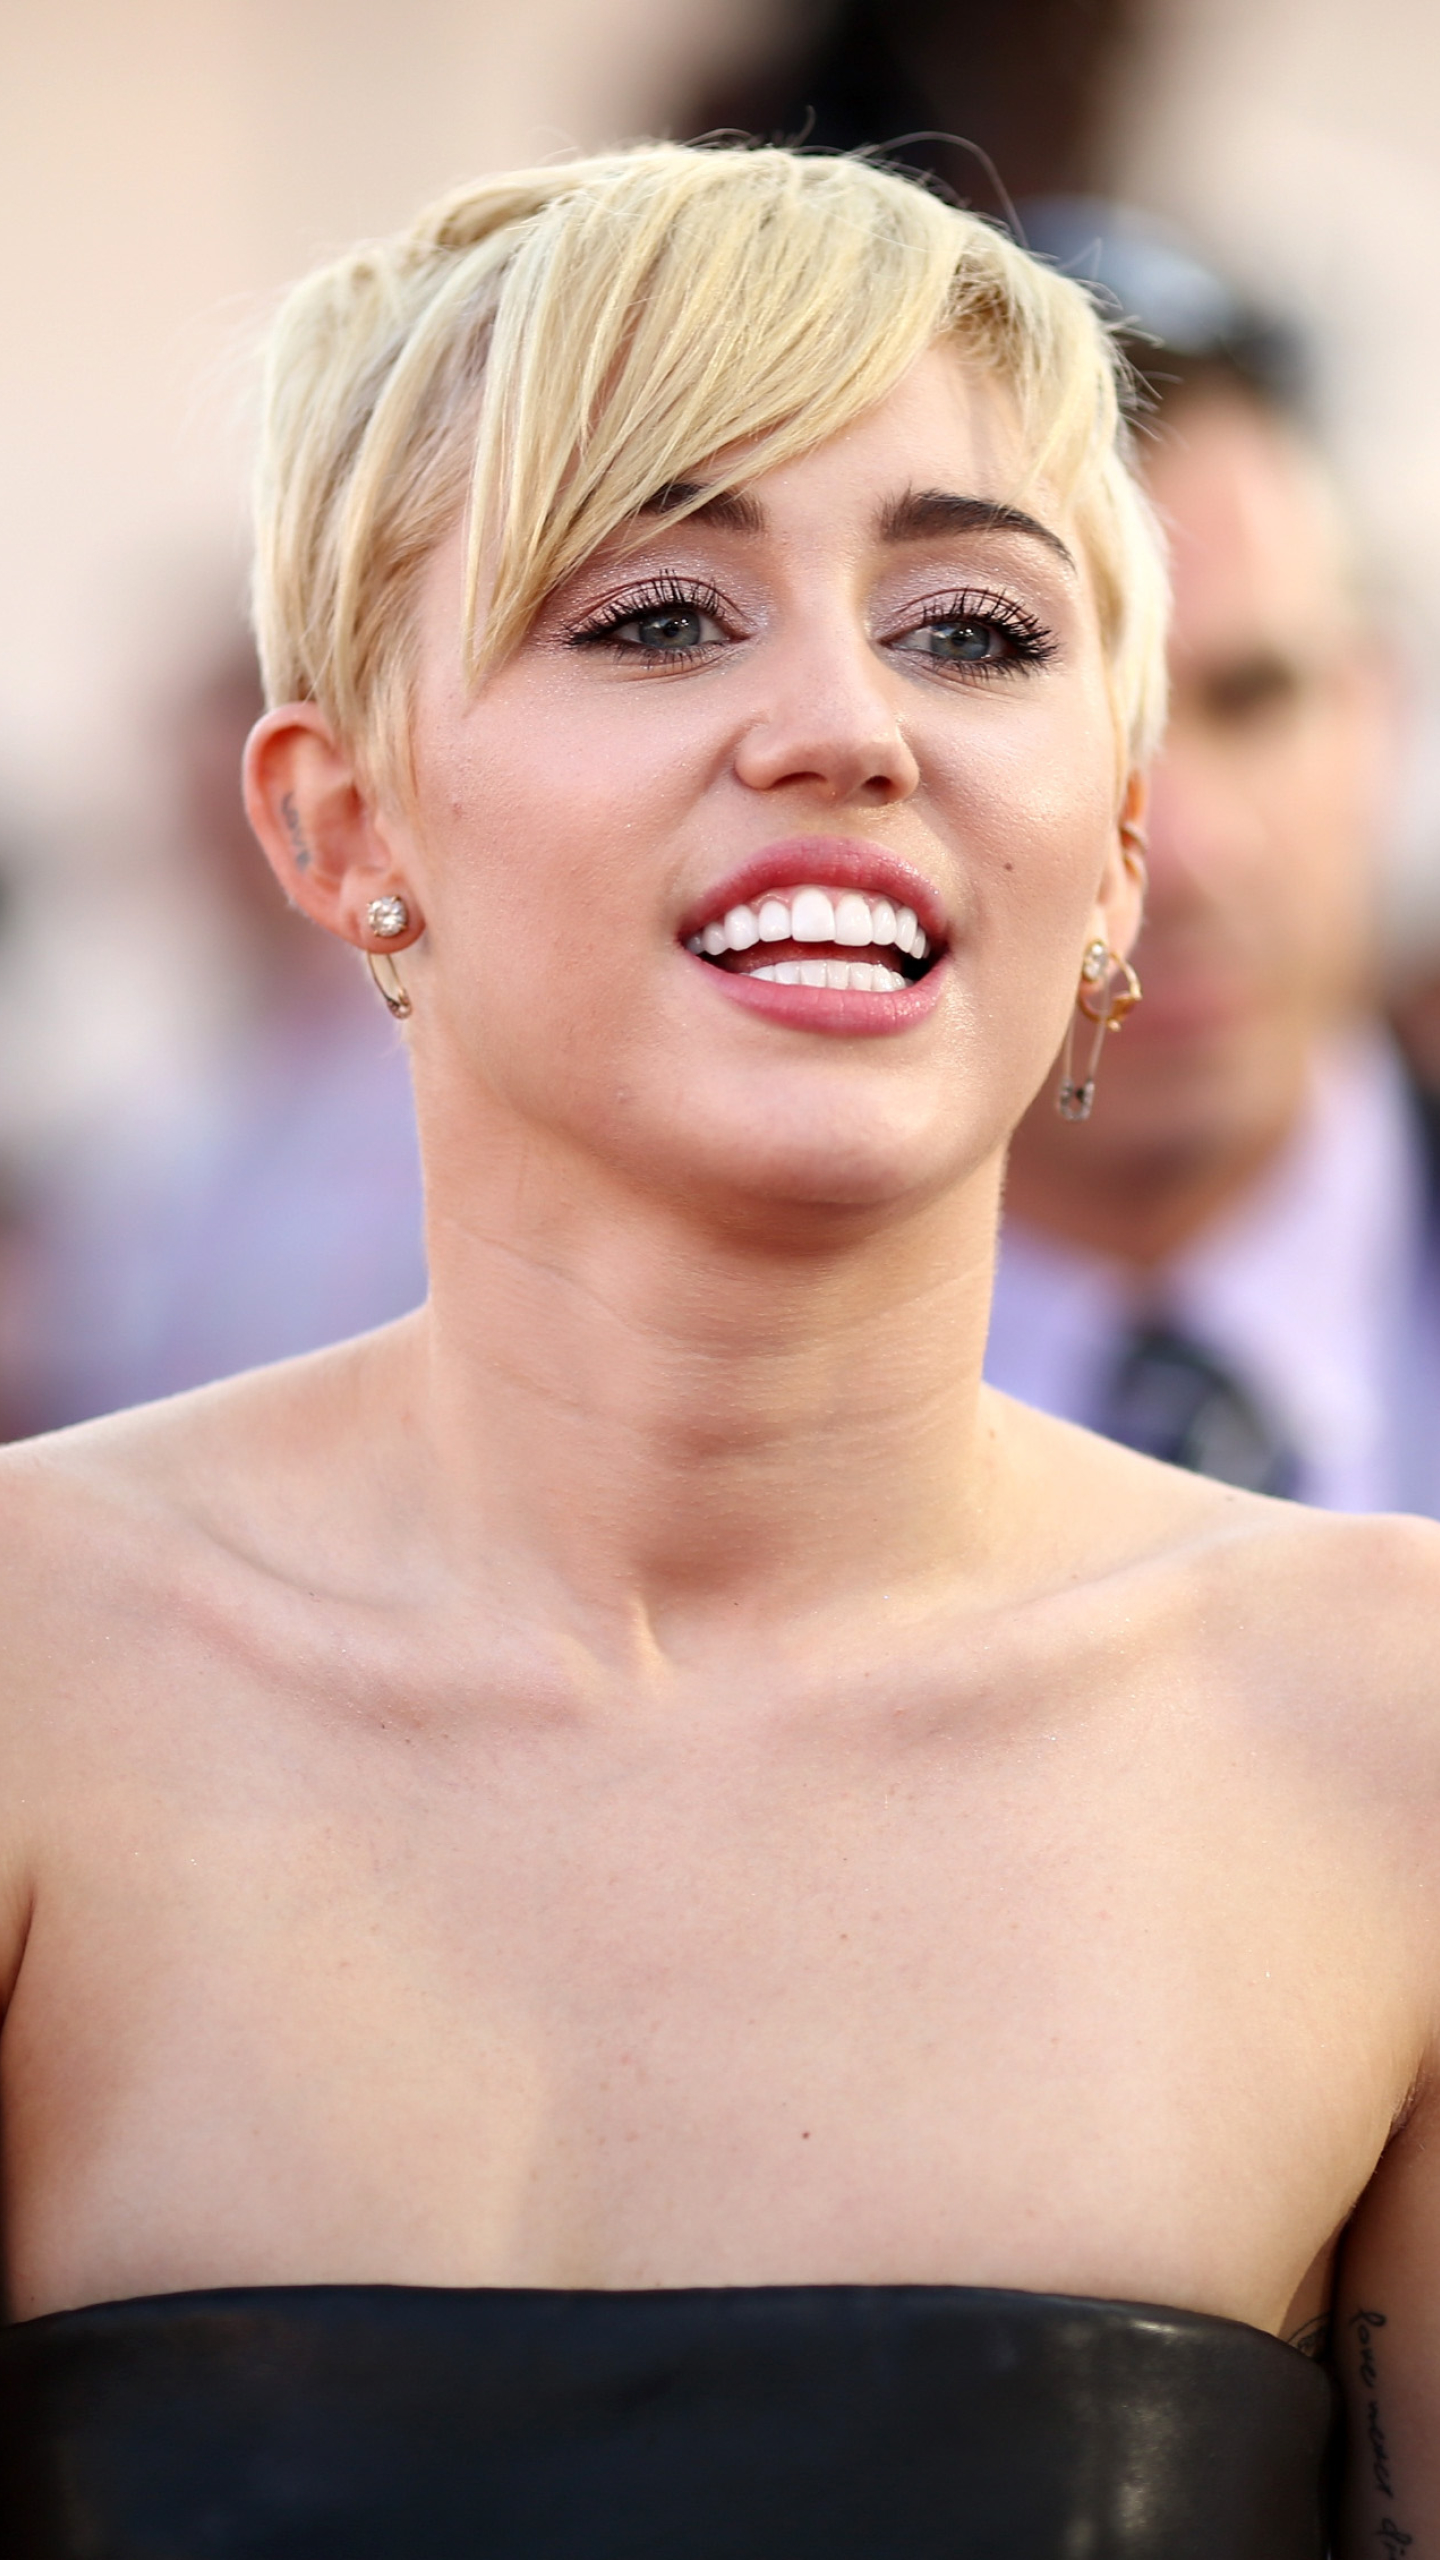 Thesis About Miley Cyrus – 225493